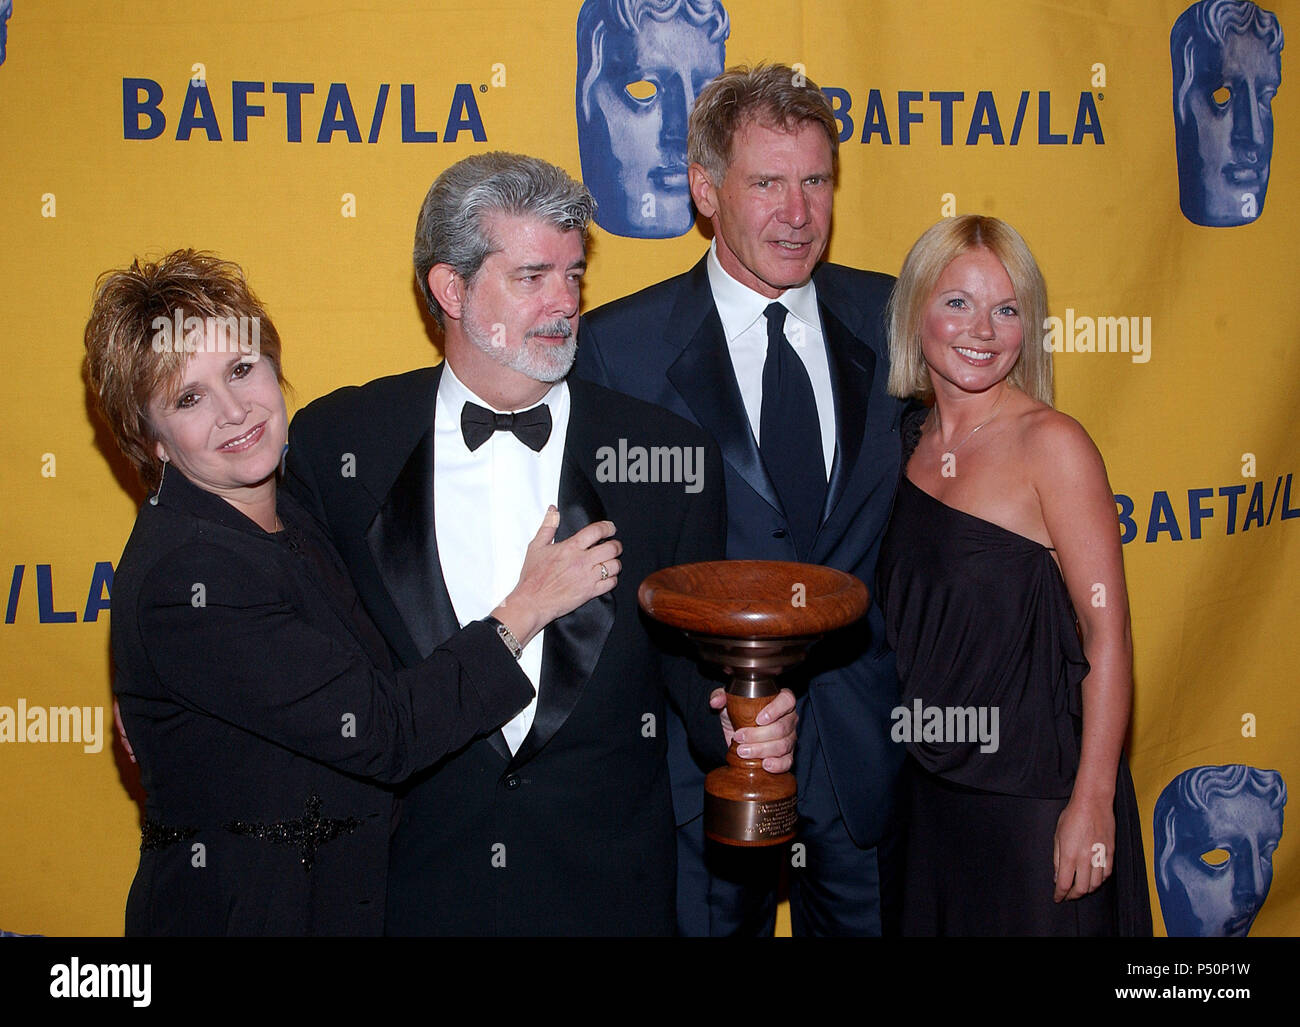 Carrie Fisher, Harrison Ford and the performer Geri Halliwell at The 11th Annual BAFTA-LA -Britannia Awards presented to George Lucas at the Beverly Hilton in Los Angeles. April 12,  2002.             -            FisherFordLucasHalliwell01.jpgFisherFordLucasHalliwell01  Event in Hollywood Life - California, Red Carpet Event, USA, Film Industry, Celebrities, Photography, Bestof, Arts Culture and Entertainment, Topix Celebrities fashion, Best of, Hollywood Life, Event in Hollywood Life - California,  backstage trophy, Awards show, movie celebrities, TV celebrities, Music celebrities, Topix, Bes - Stock Image